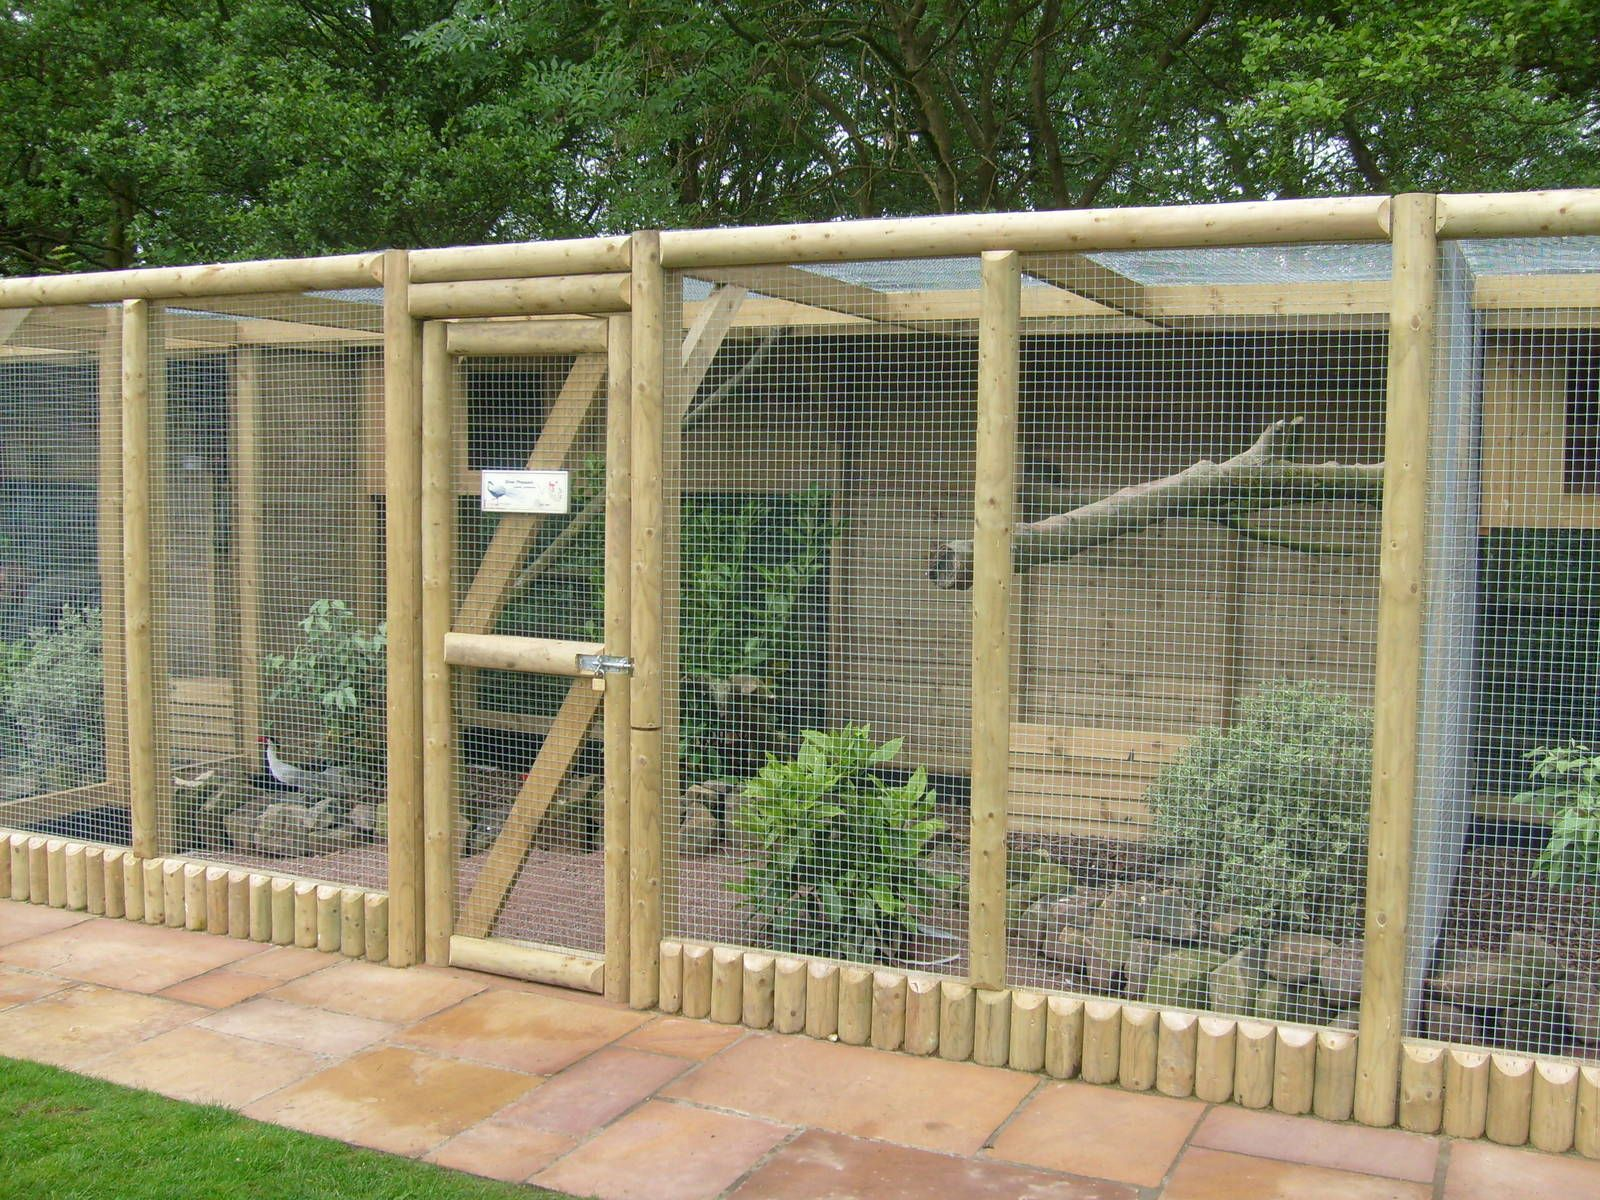 Pheasant enclosures google search chicken coops for Chicken enclosure ideas